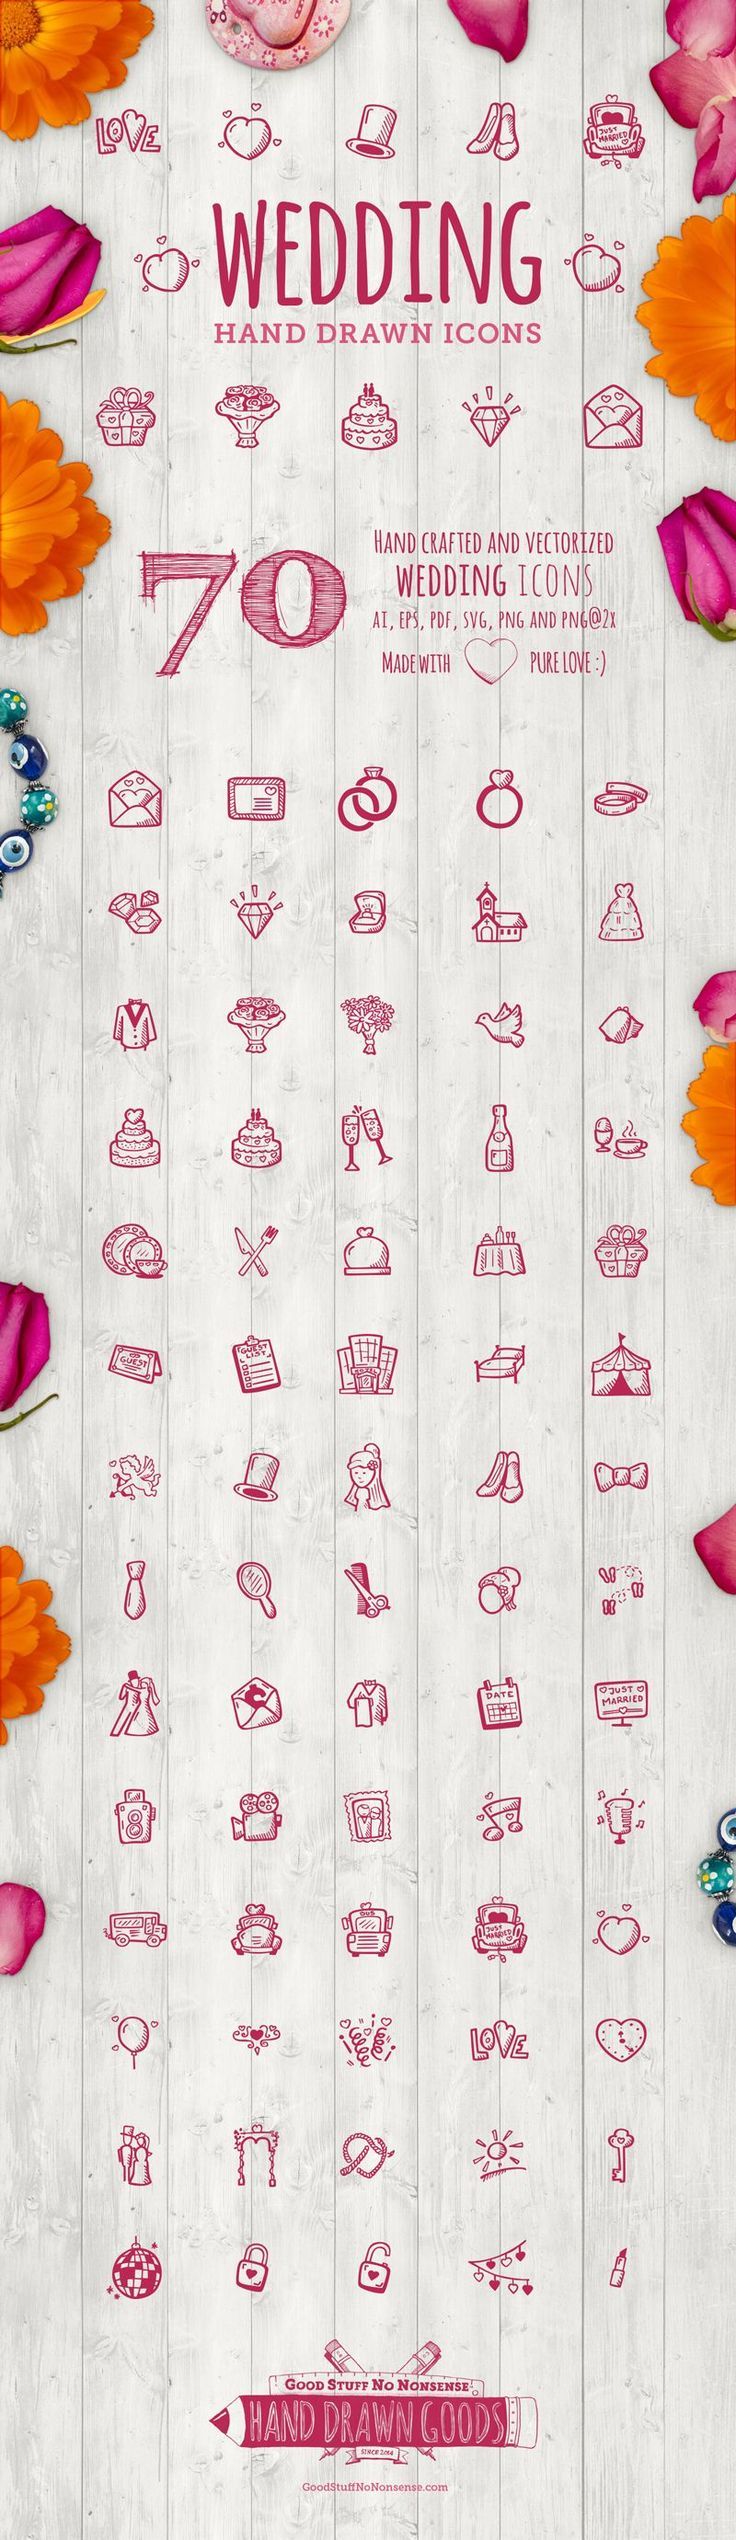 Wedding Icons by Agata Kuczminska